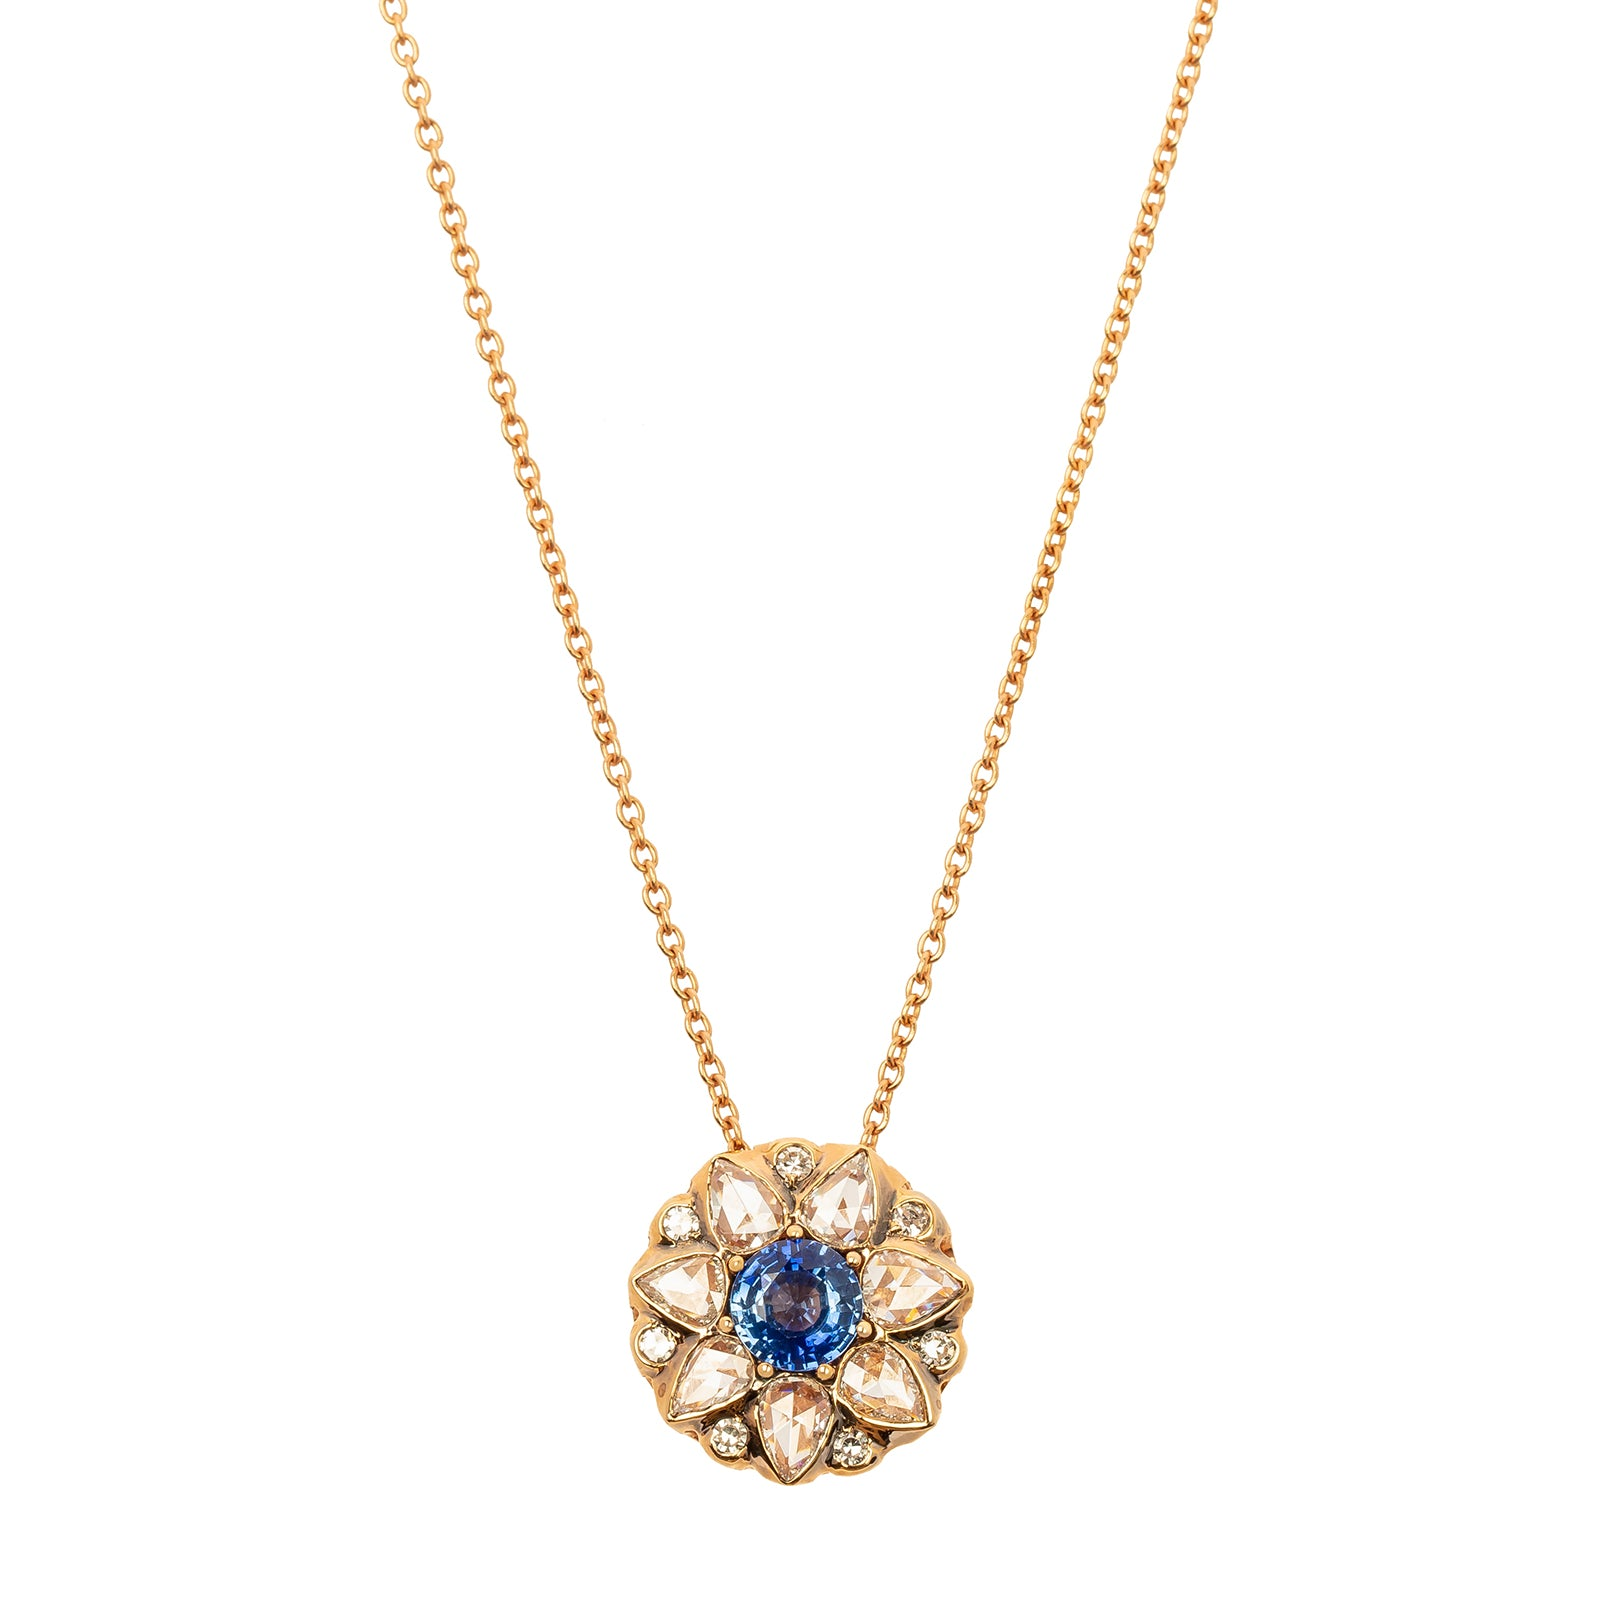 Selim Mouzannar Beruit Necklace - Blue Sapphire & Mixed White Diamond - Necklaces - Broken English Jewelry